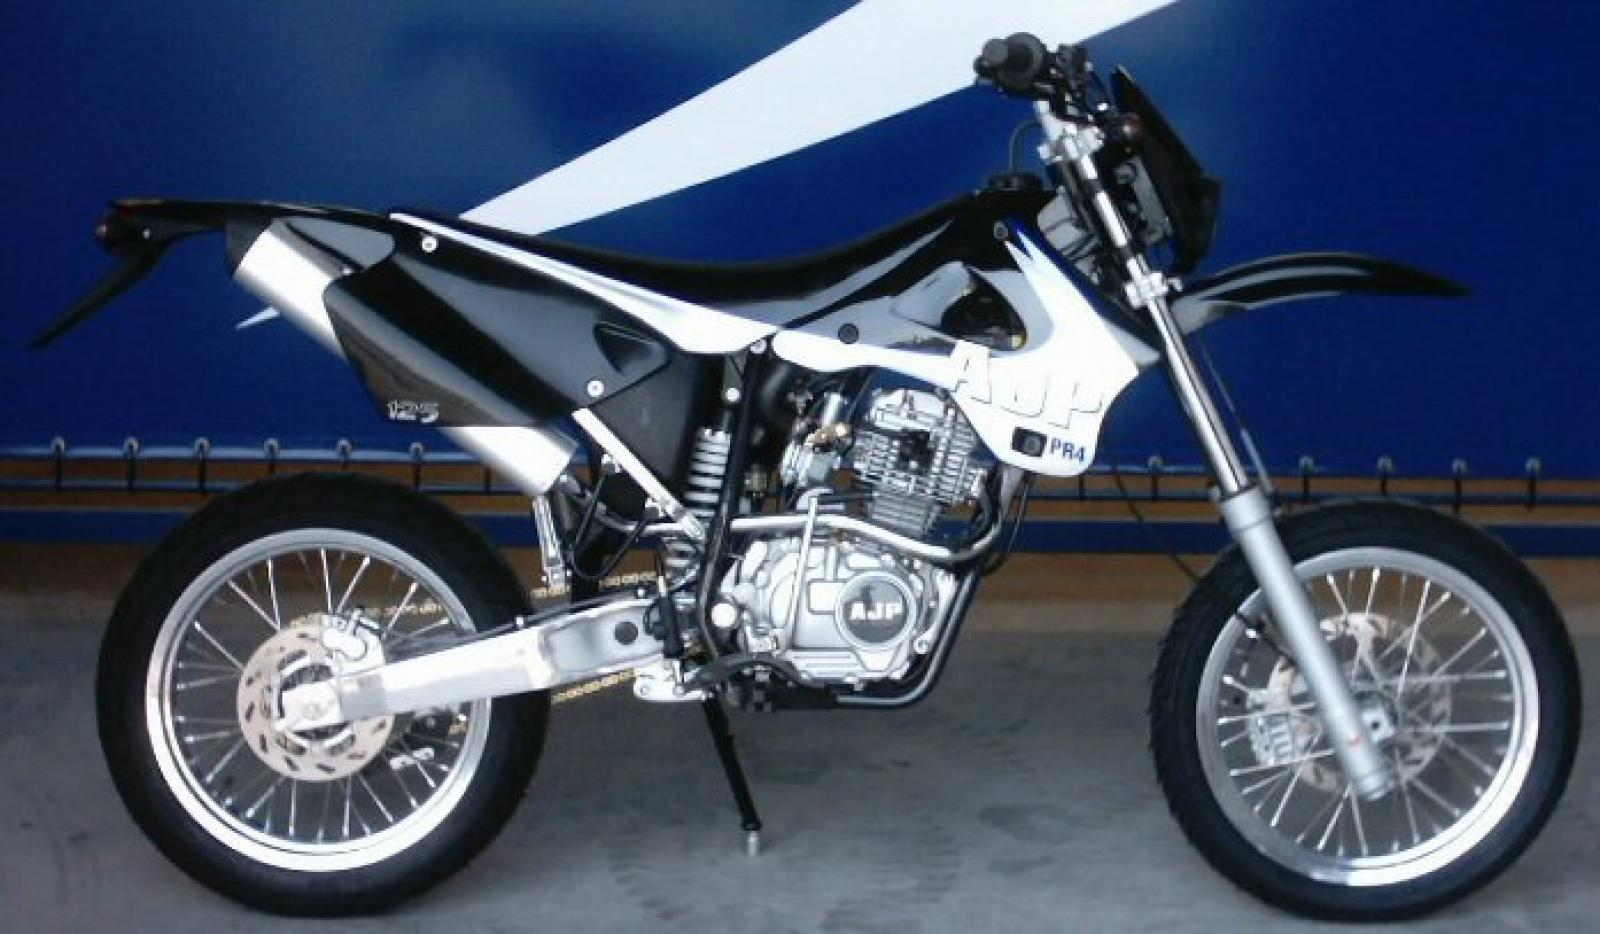 AJP PR4 200 Supermoto images #155846